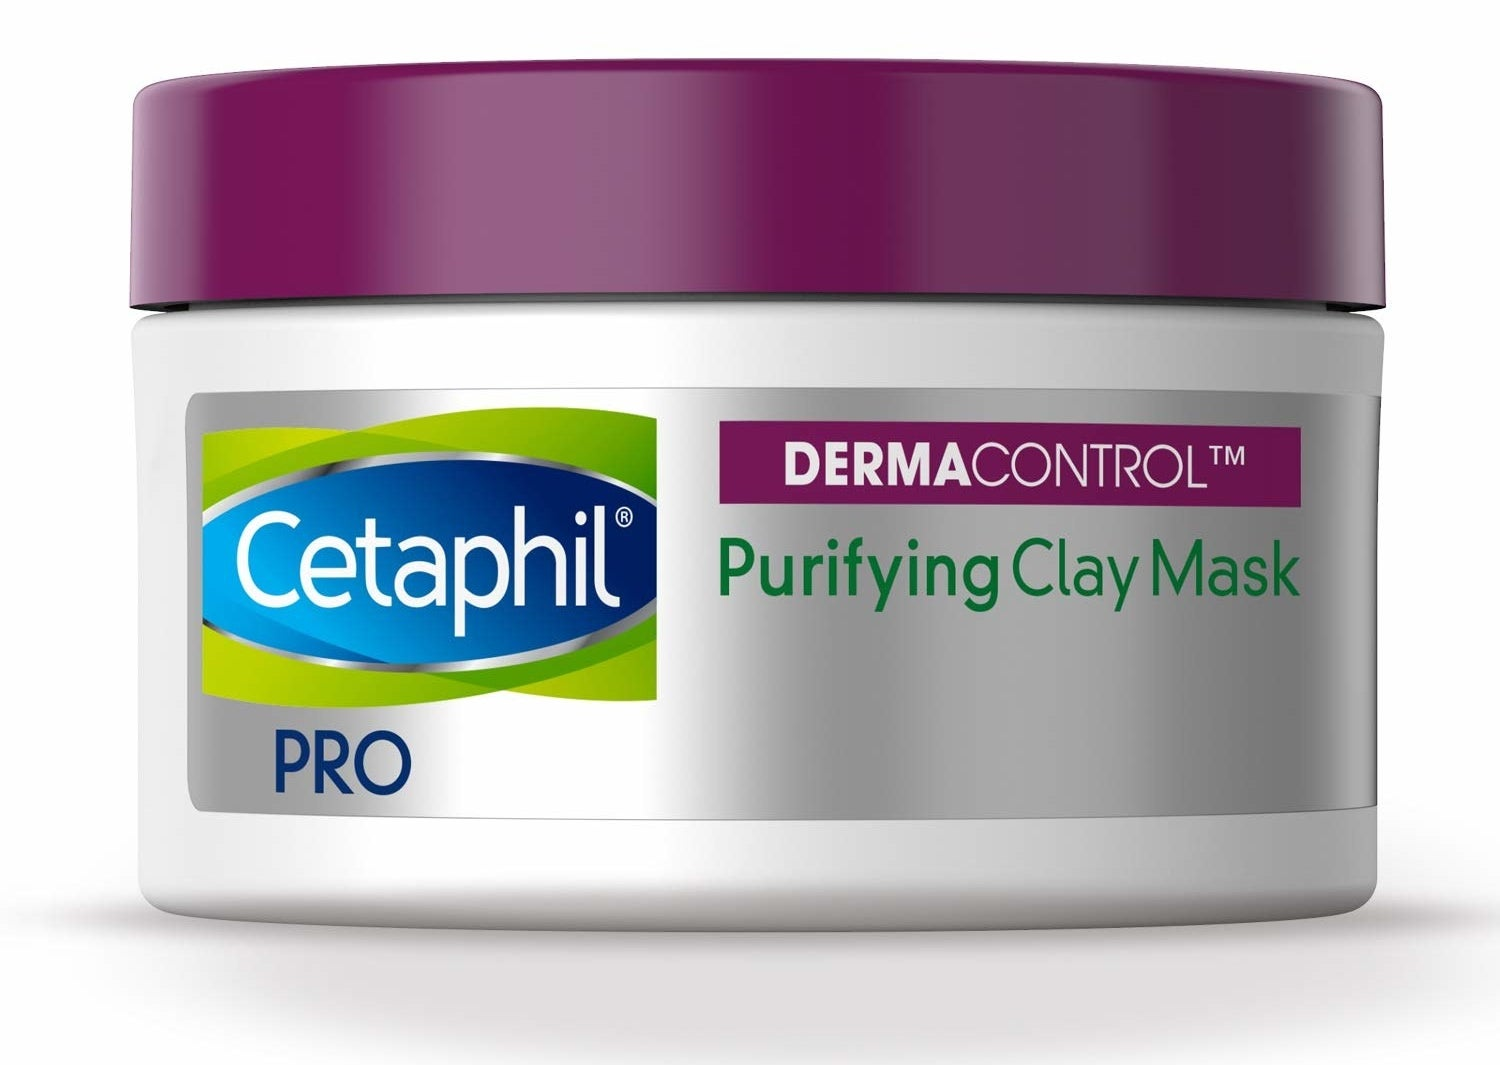 A jar of Cetaphil Pro Dermacontrol Purifying Clay Mask.